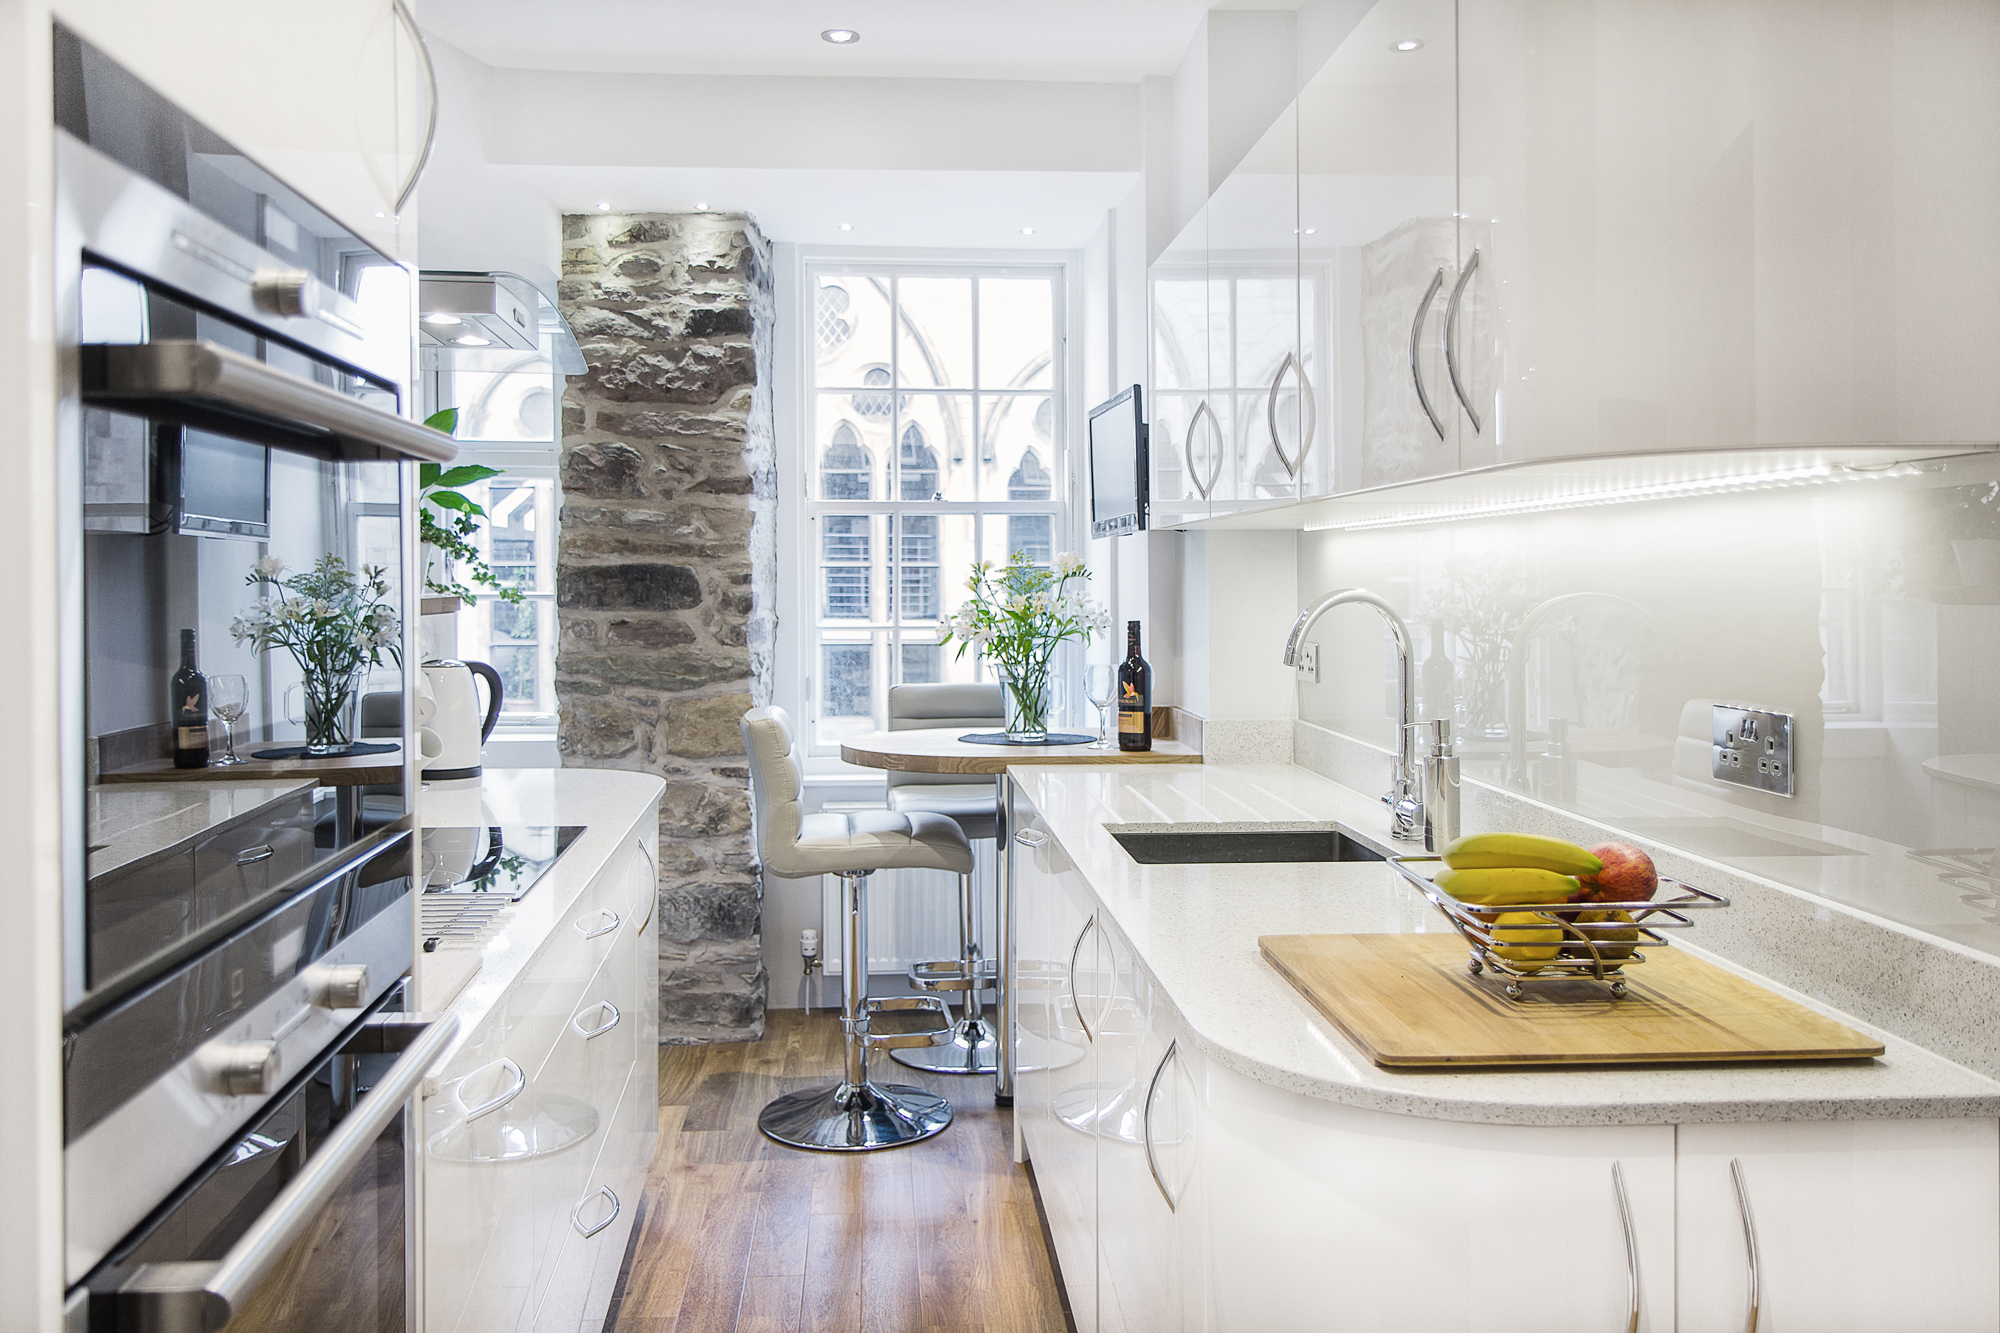 Small Kitchen Ideas 9 Design Strategies for Compact Spaces ...